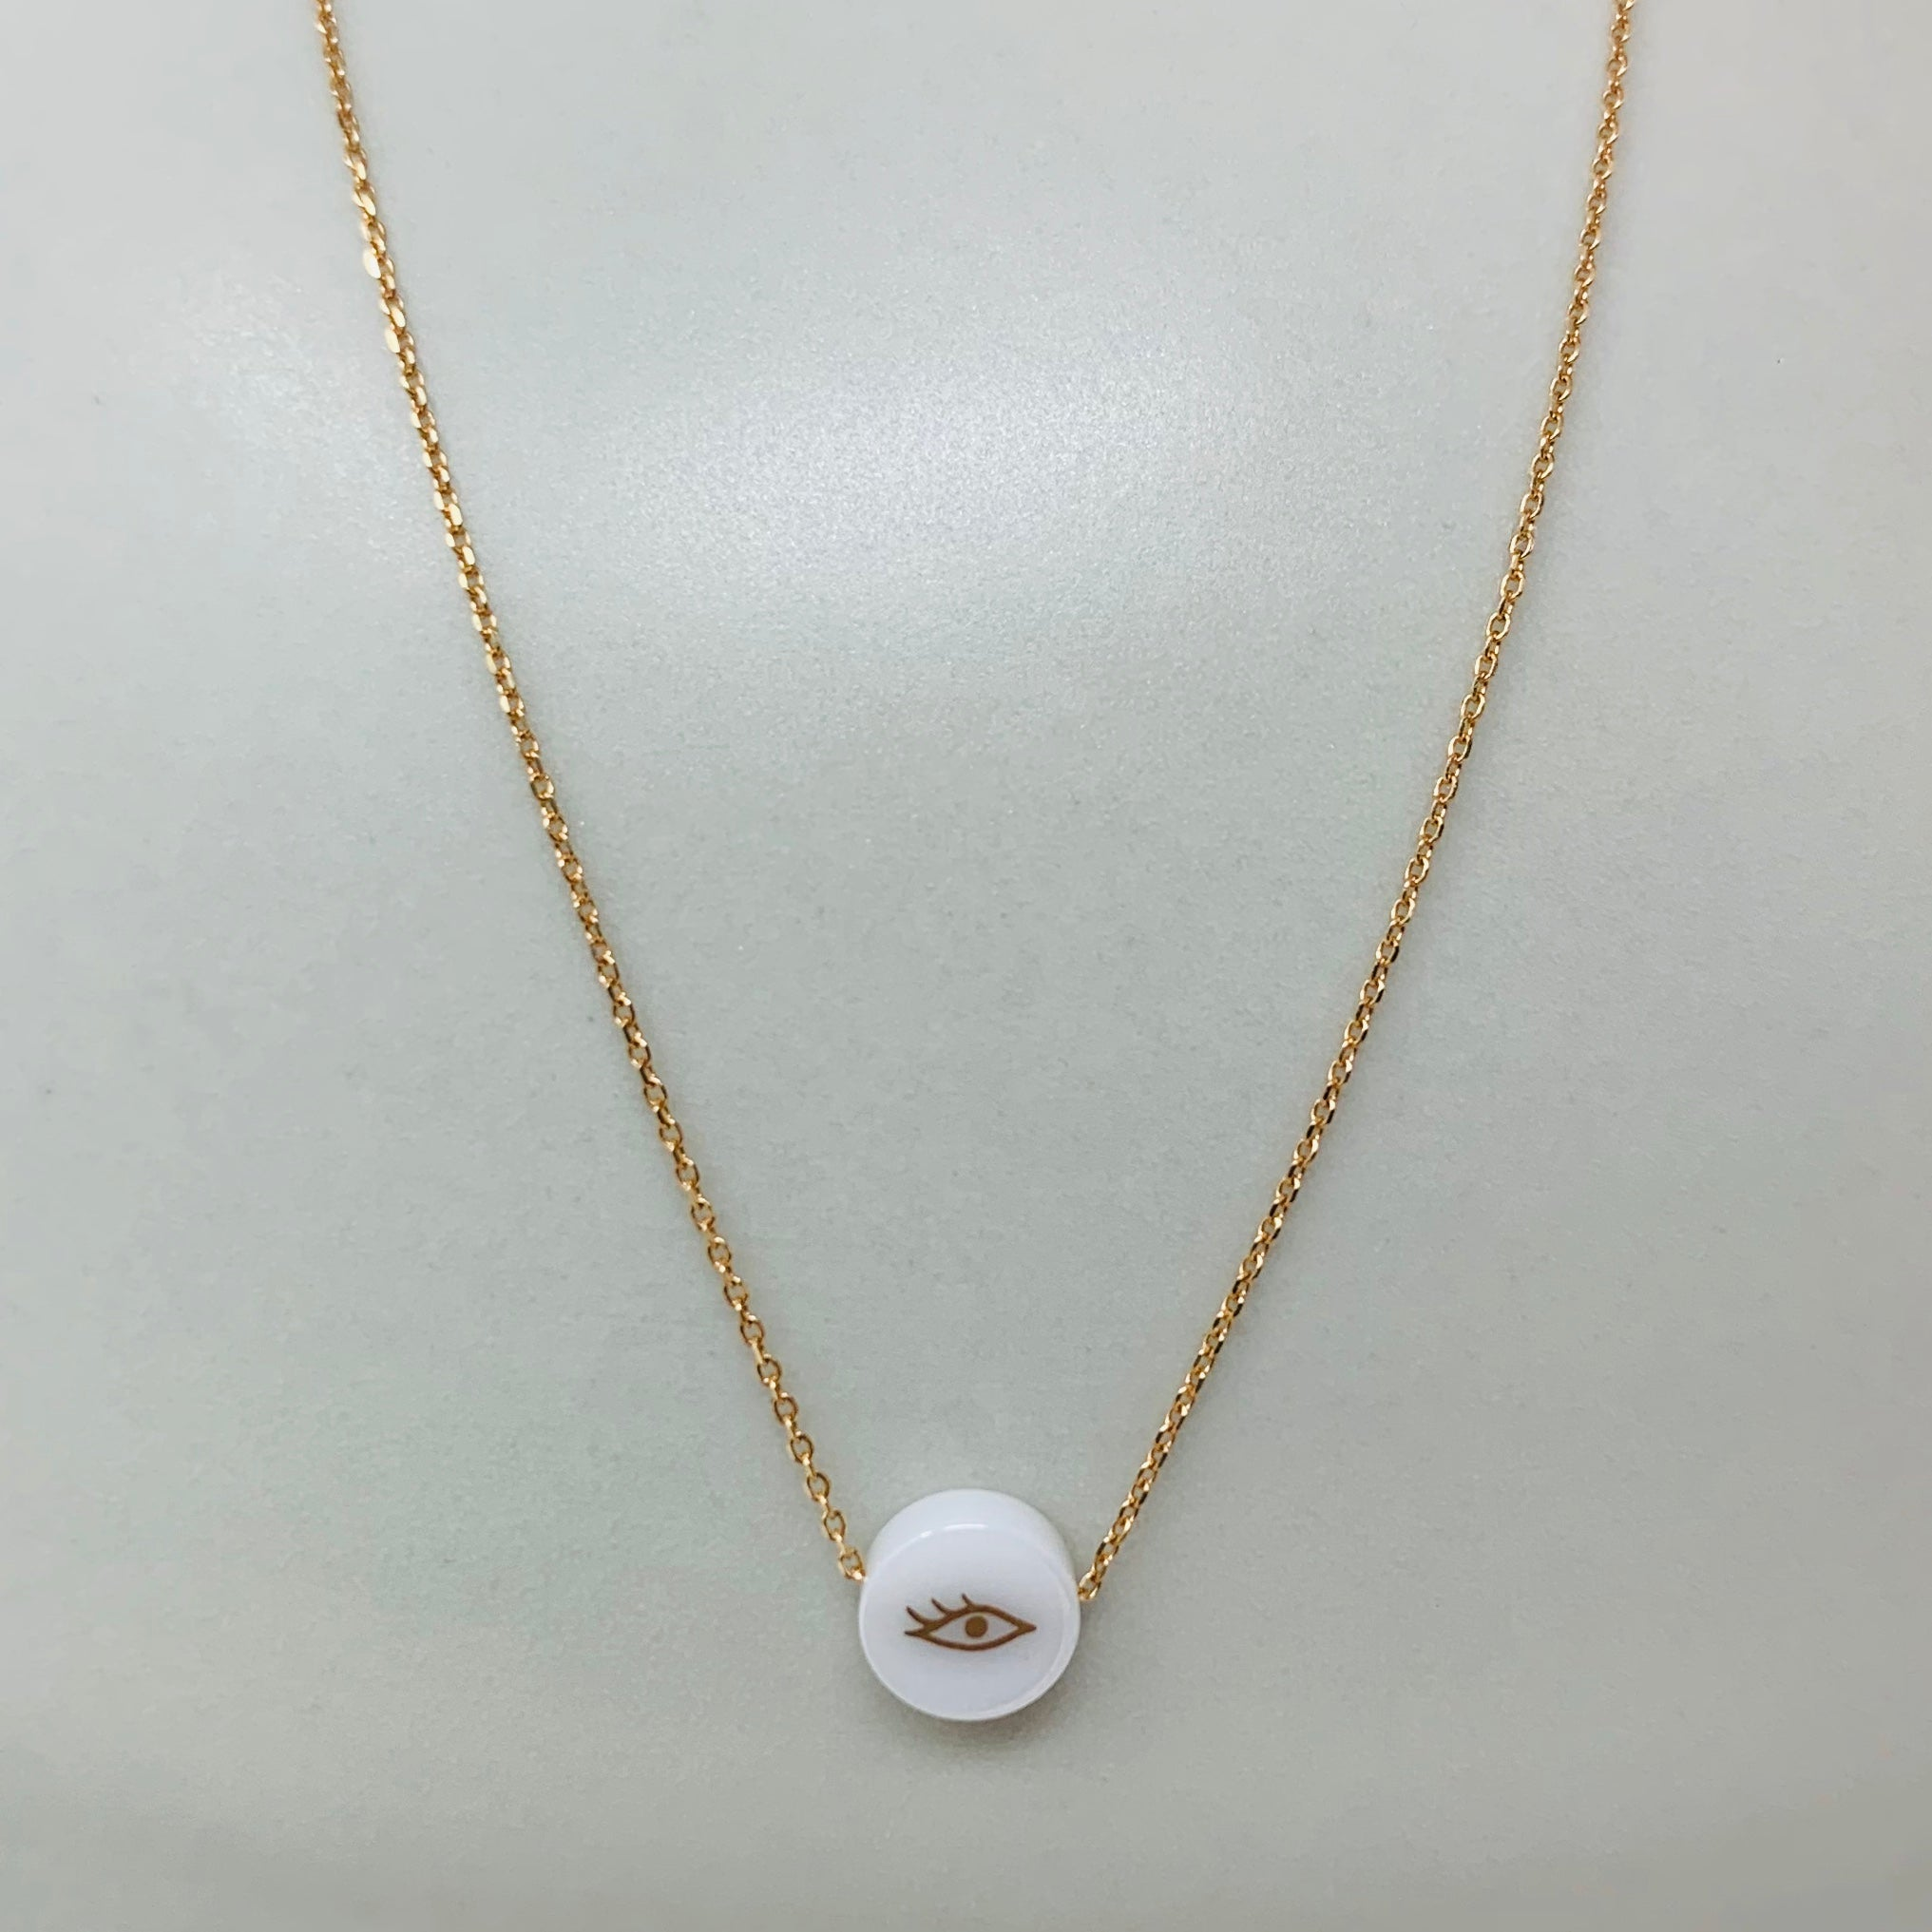 18k Gold Ceramic Single Bead Symbol Necklaces 16""